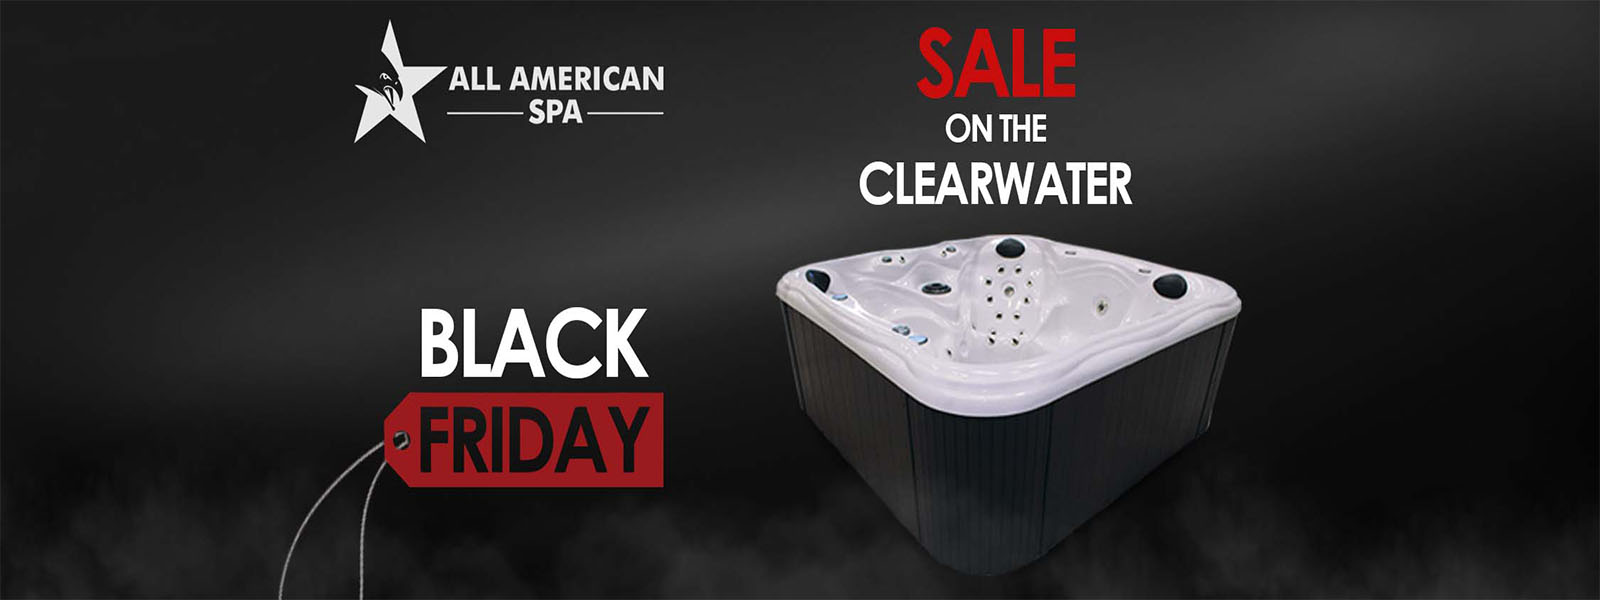 spas friday home best the and for s tubs swim tub deals black rich of luxury unique images on furniture hot pinterest